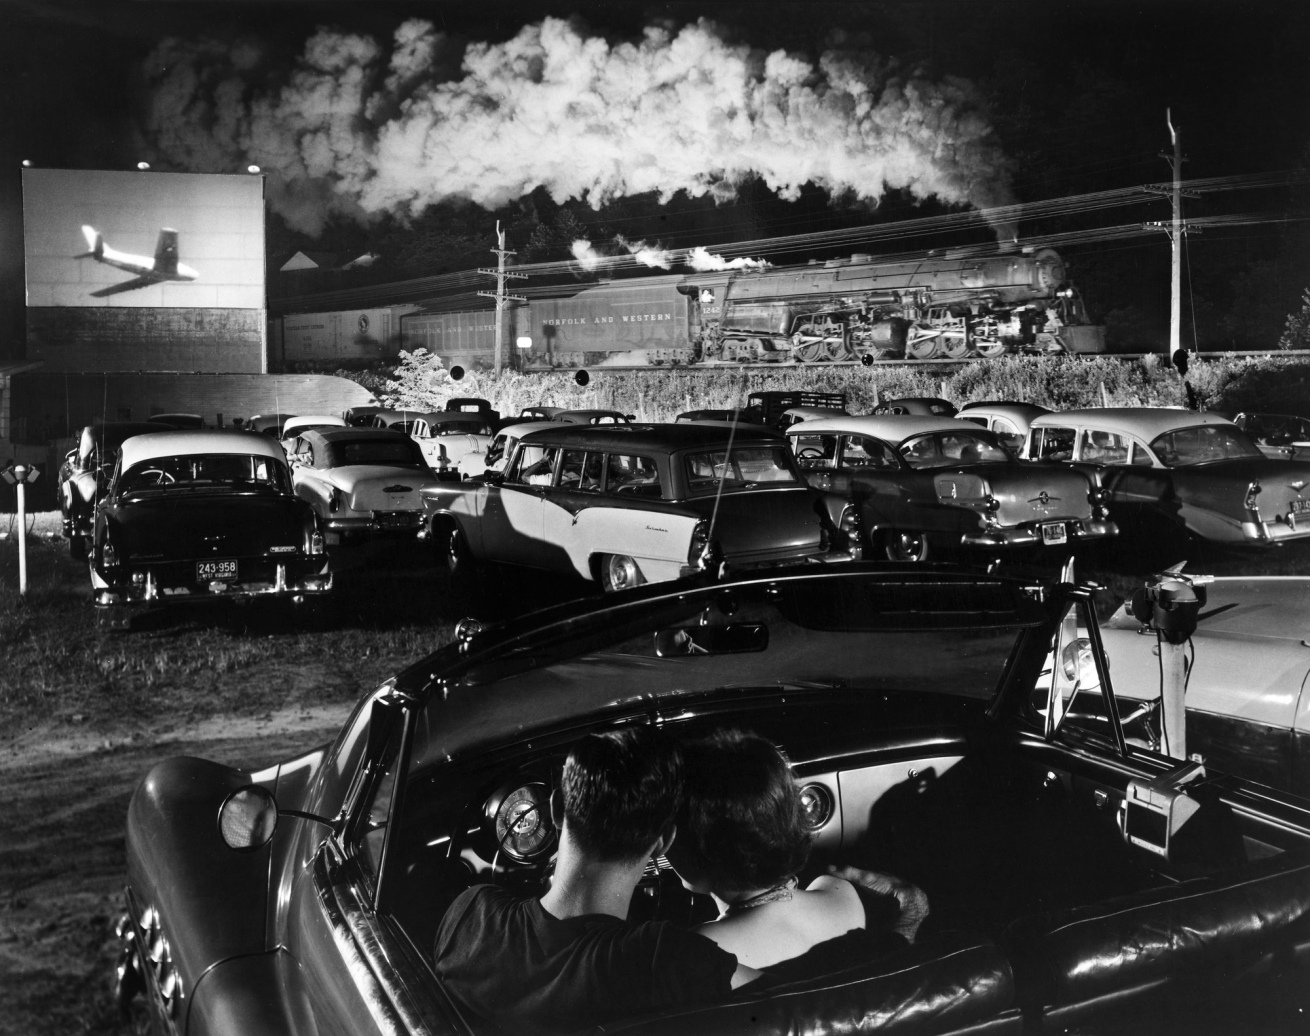 Fotó: O. Winston Link: Hot Shot Eastbound, at the Iaeger Drive-In. W.V. Iaeger, West Virginia, Aug. 2, 1956 © O. Winston Link / O. Winston Link Museum, Roanoke, Virginia